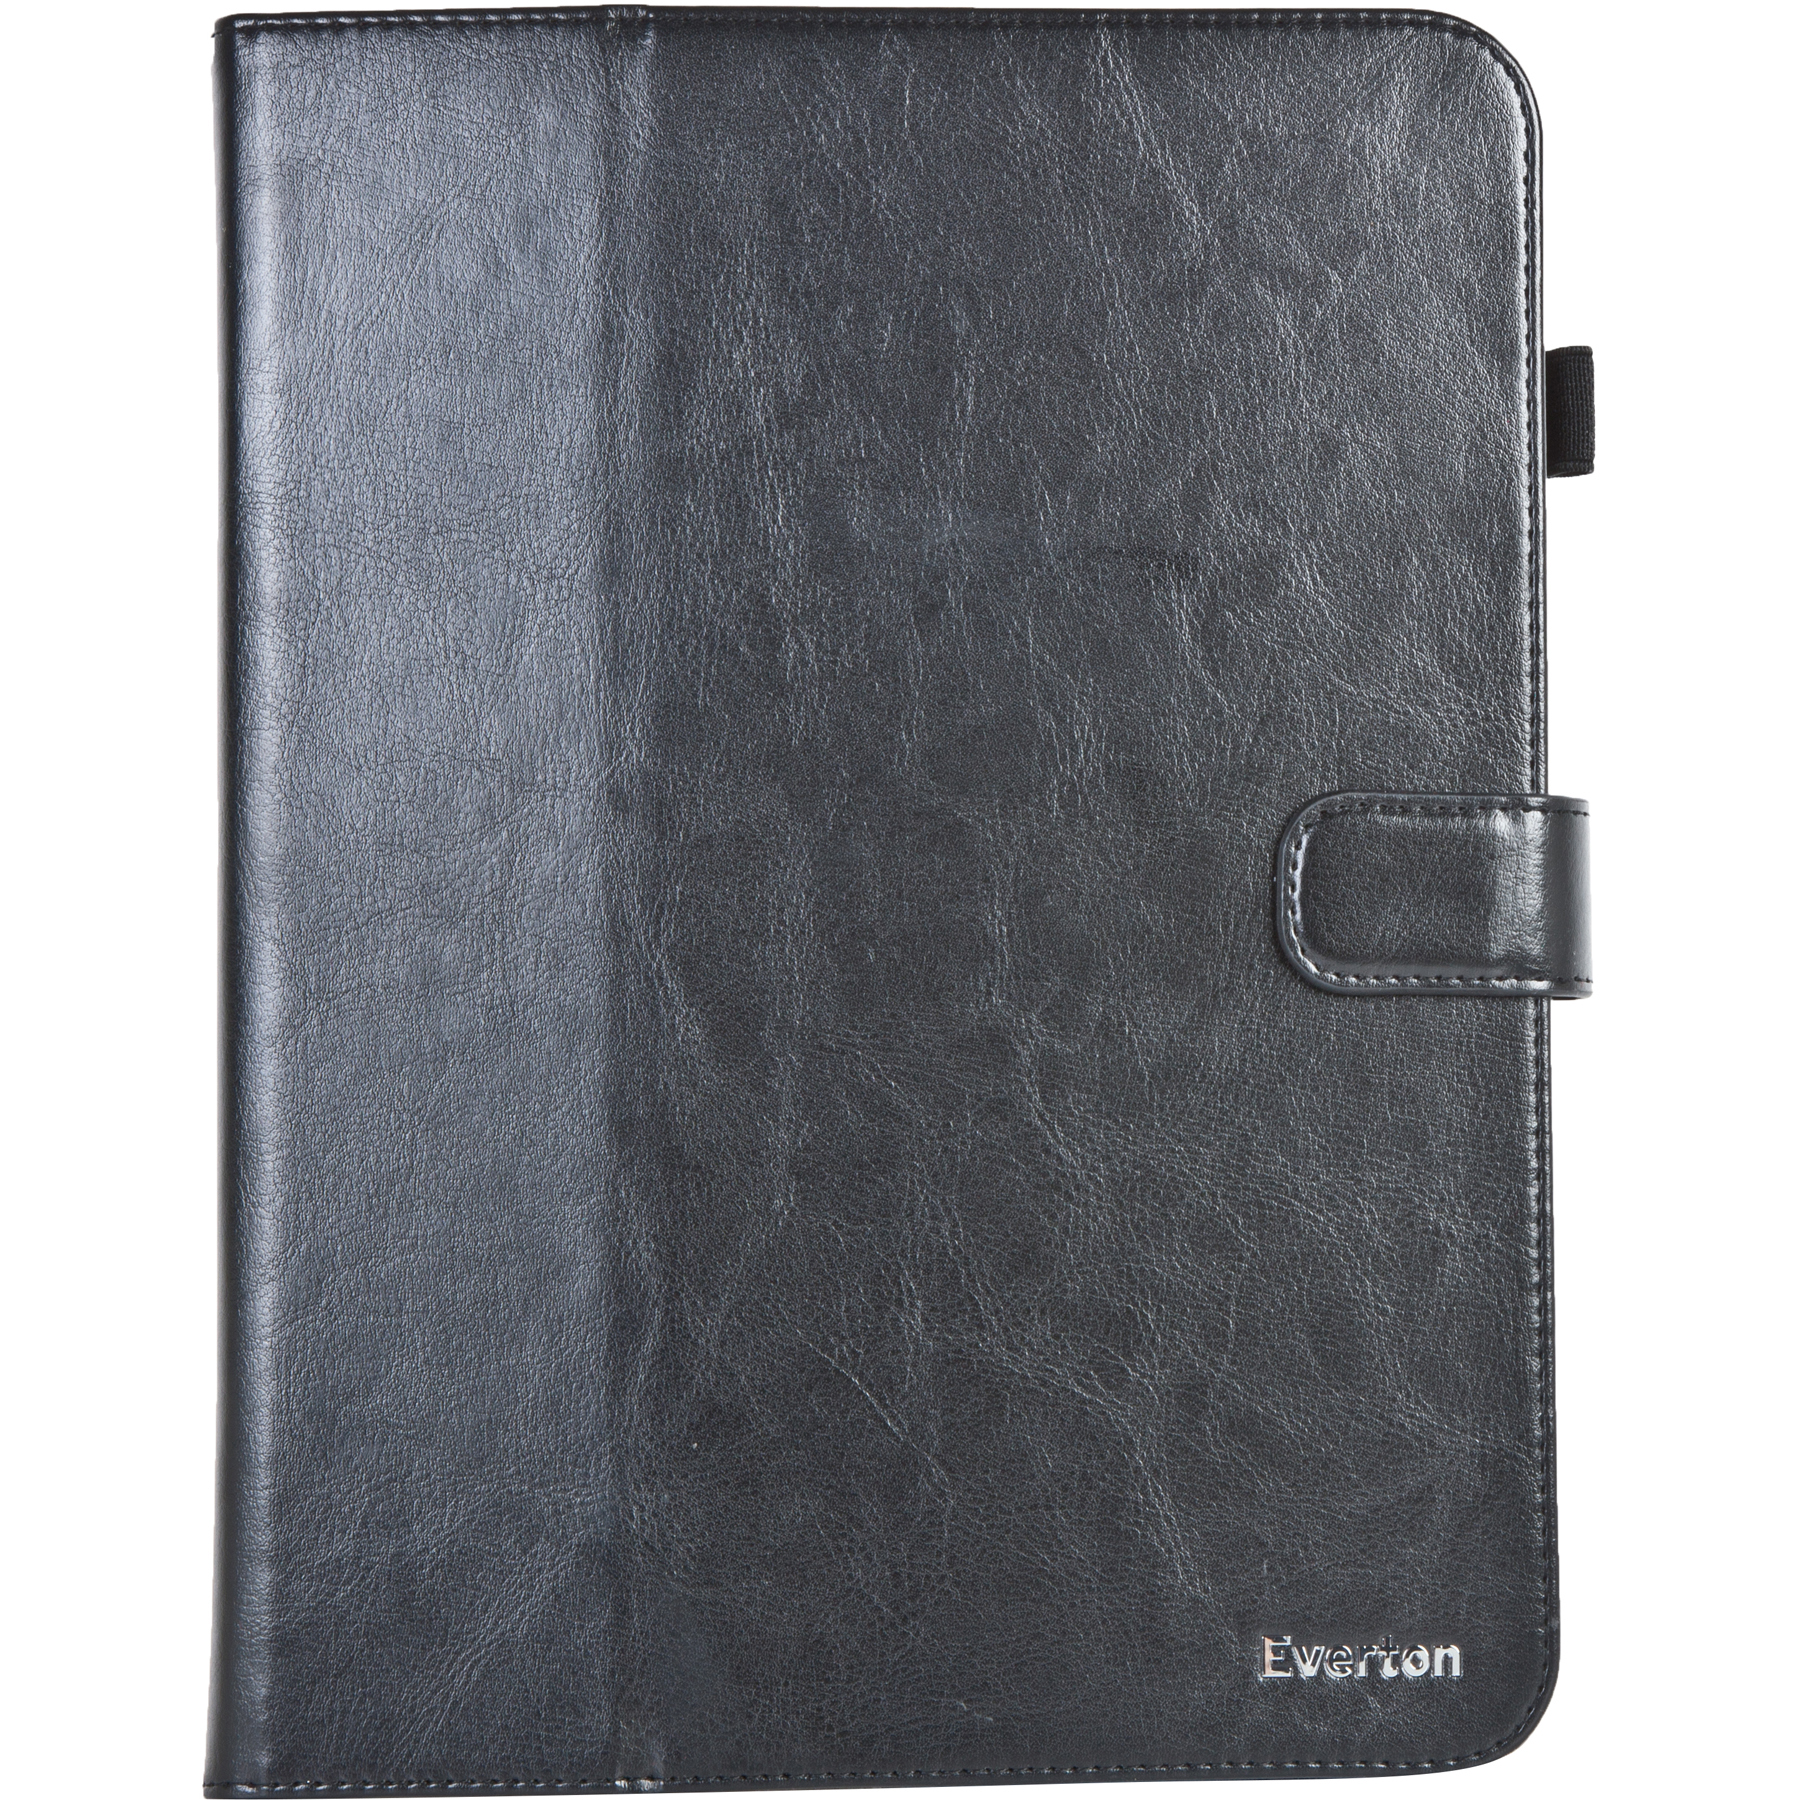 Everton Adjustable Tablet Cover - 9-10 Inch